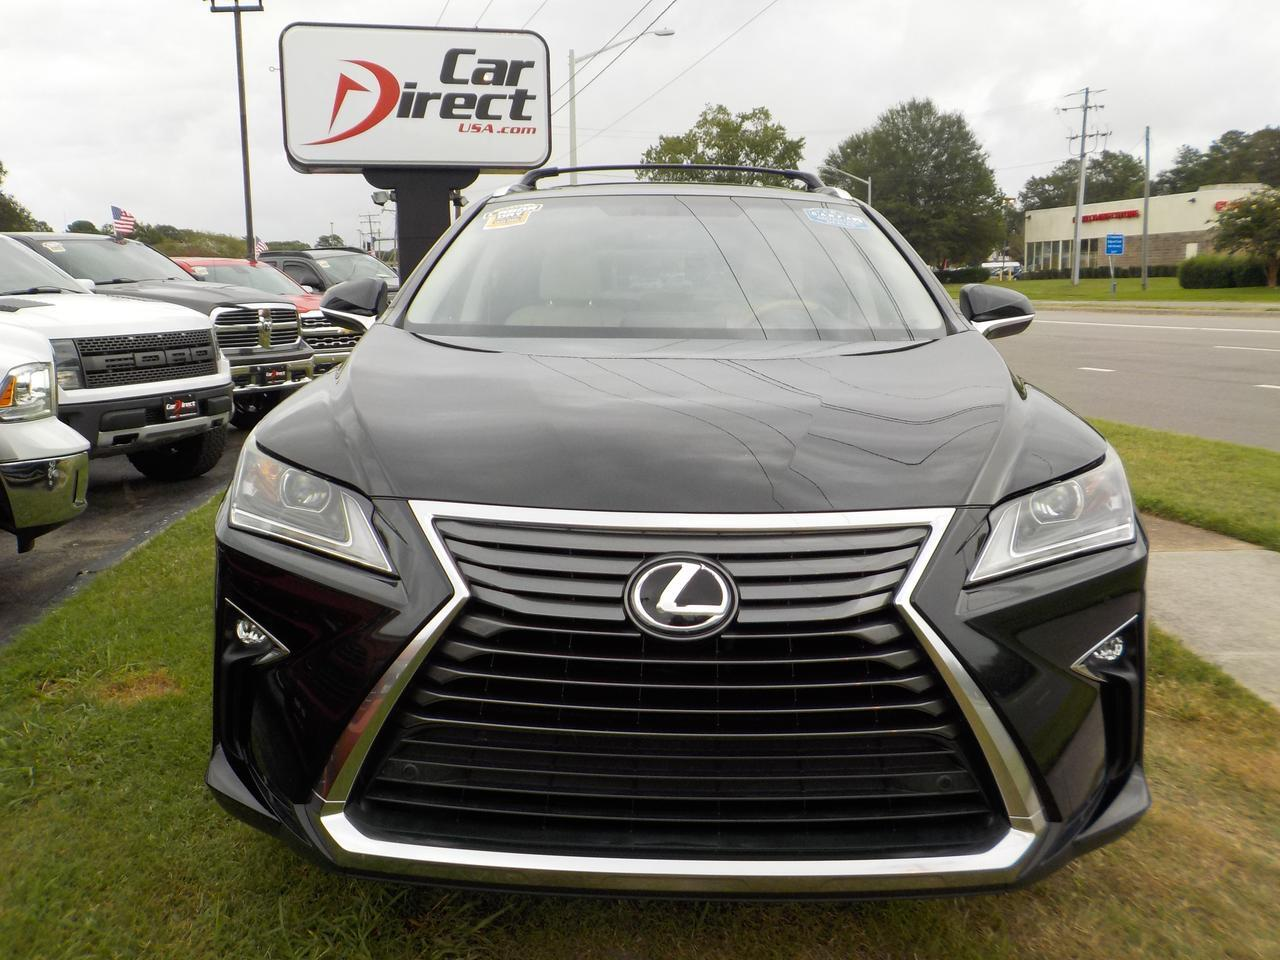 2016 LEXUS RX 350, LEATHER, SUNROOF, HEATED/COOLED SEATS, BACKUP CAM, PARKING SENSORS, LOW MILES, 1 OWNER, CLEAN! Virginia Beach VA